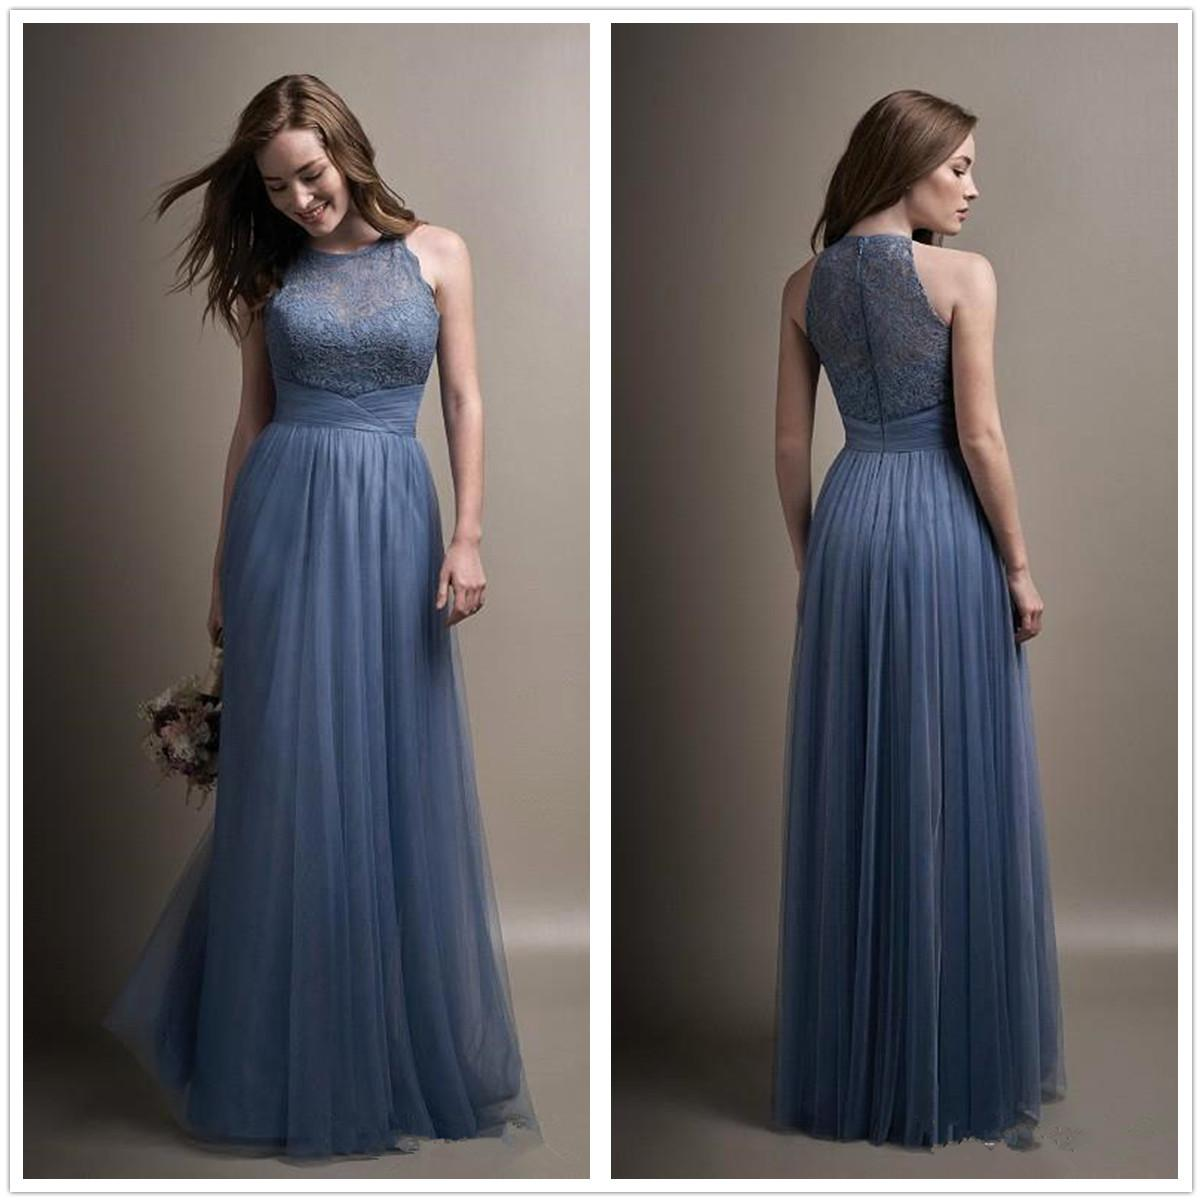 eafcfb0af802a New Dusty Blue Tulle Long Bridesmaid Dresses Crew Neck Lace Ruffle Floor  Length Party Evening Prom Dresses BA7433 Bridesmaid Dress Long Bridesmaid  Dresses ...